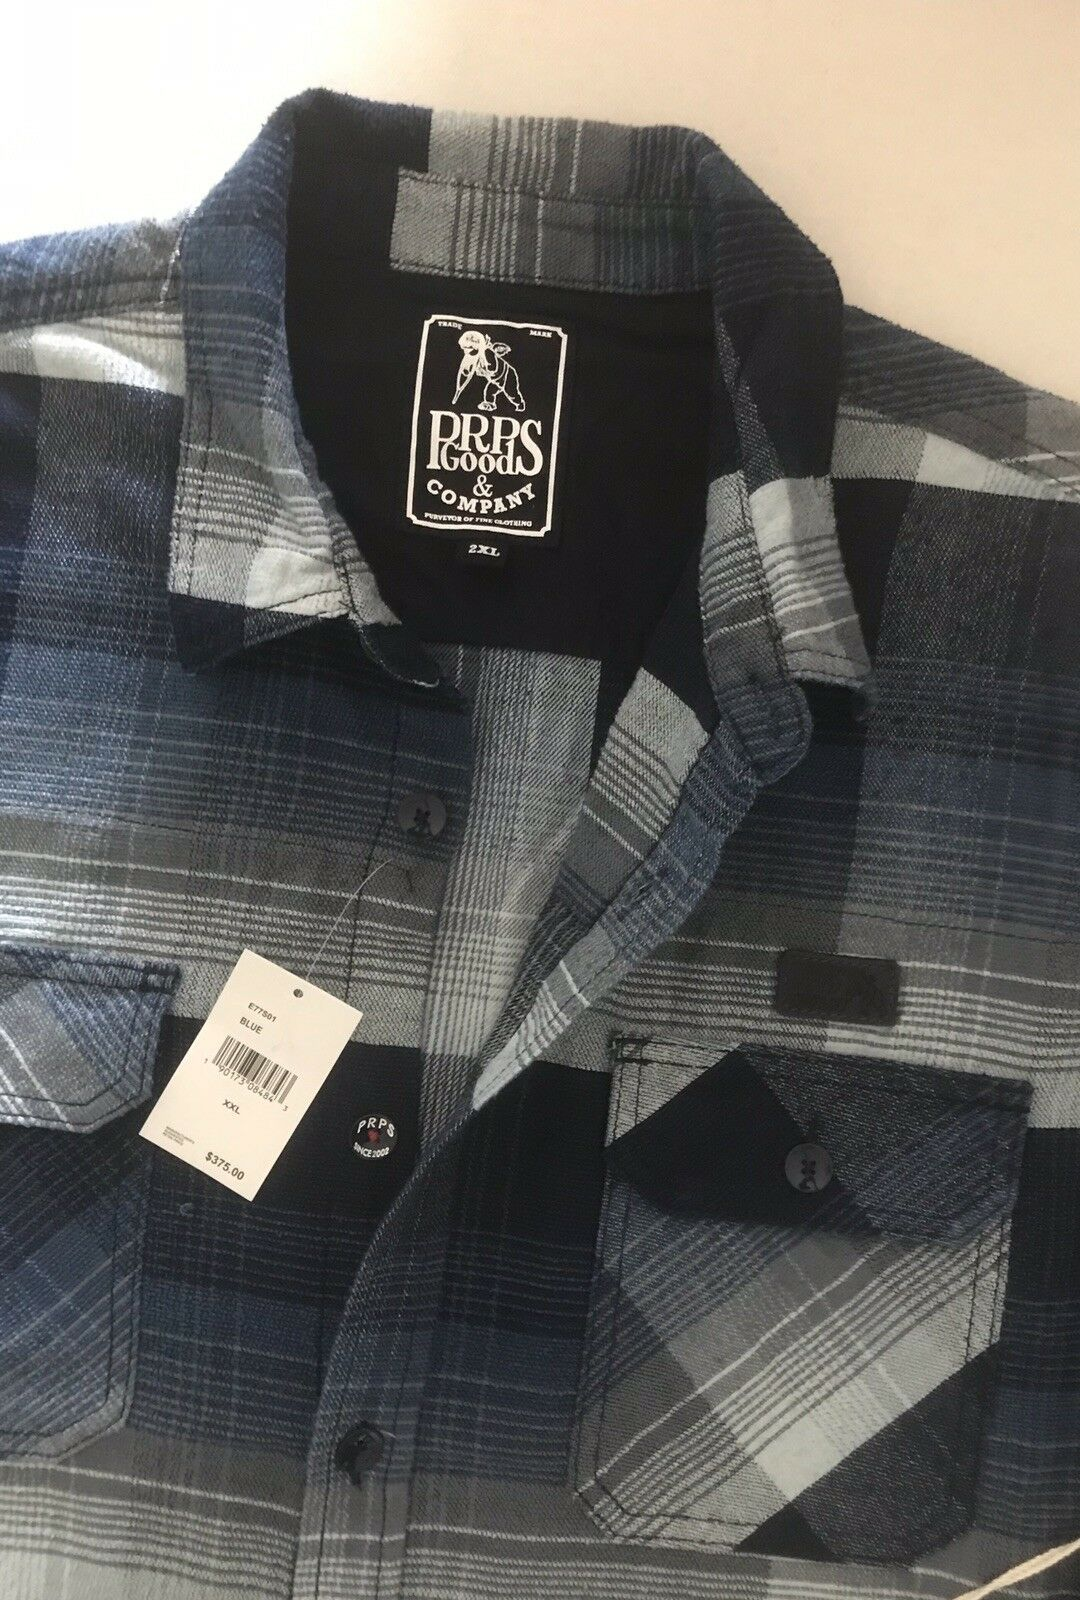 PRPS Goods & Company NWT Men's shirt E77S01 bluee 100% Cotton Size 2XL New